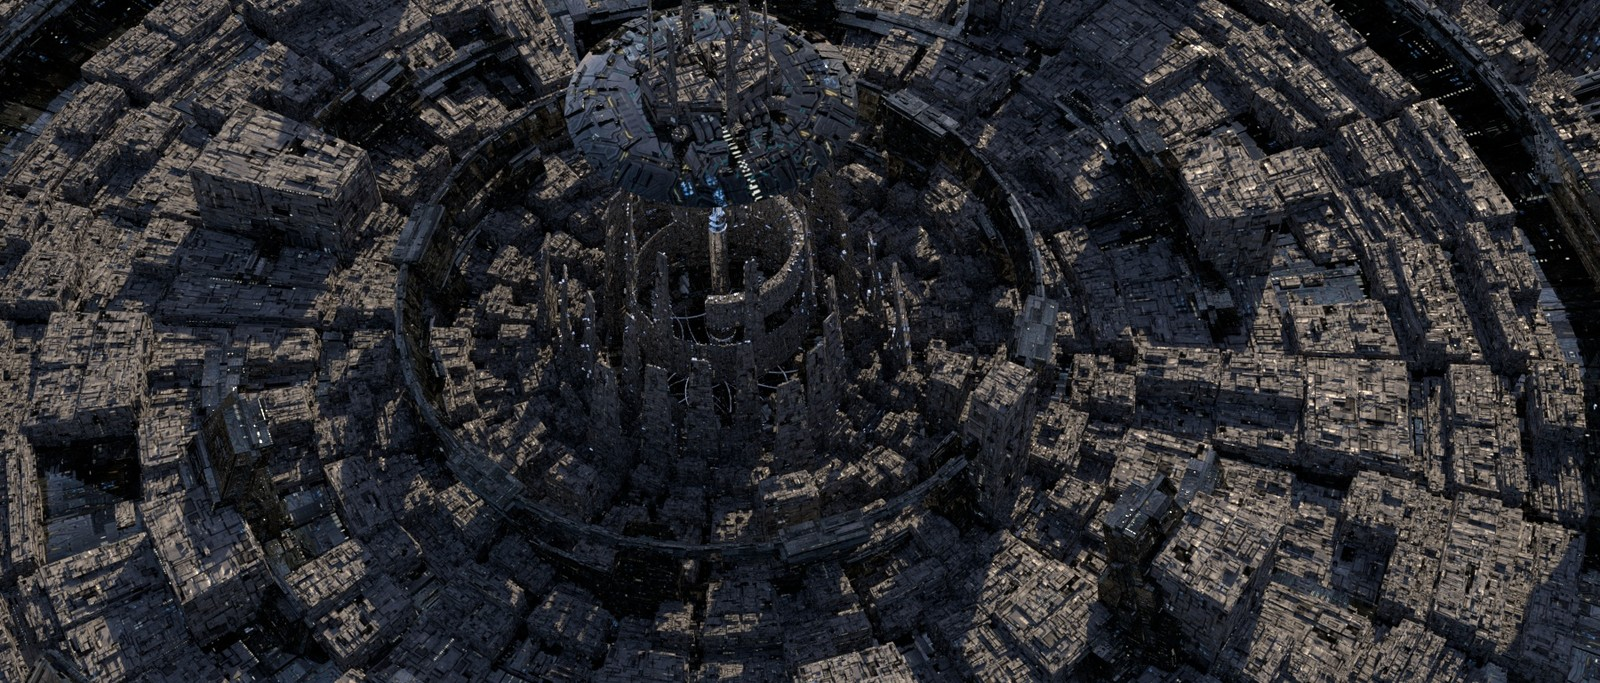 center with textures / no atmospheric effect.